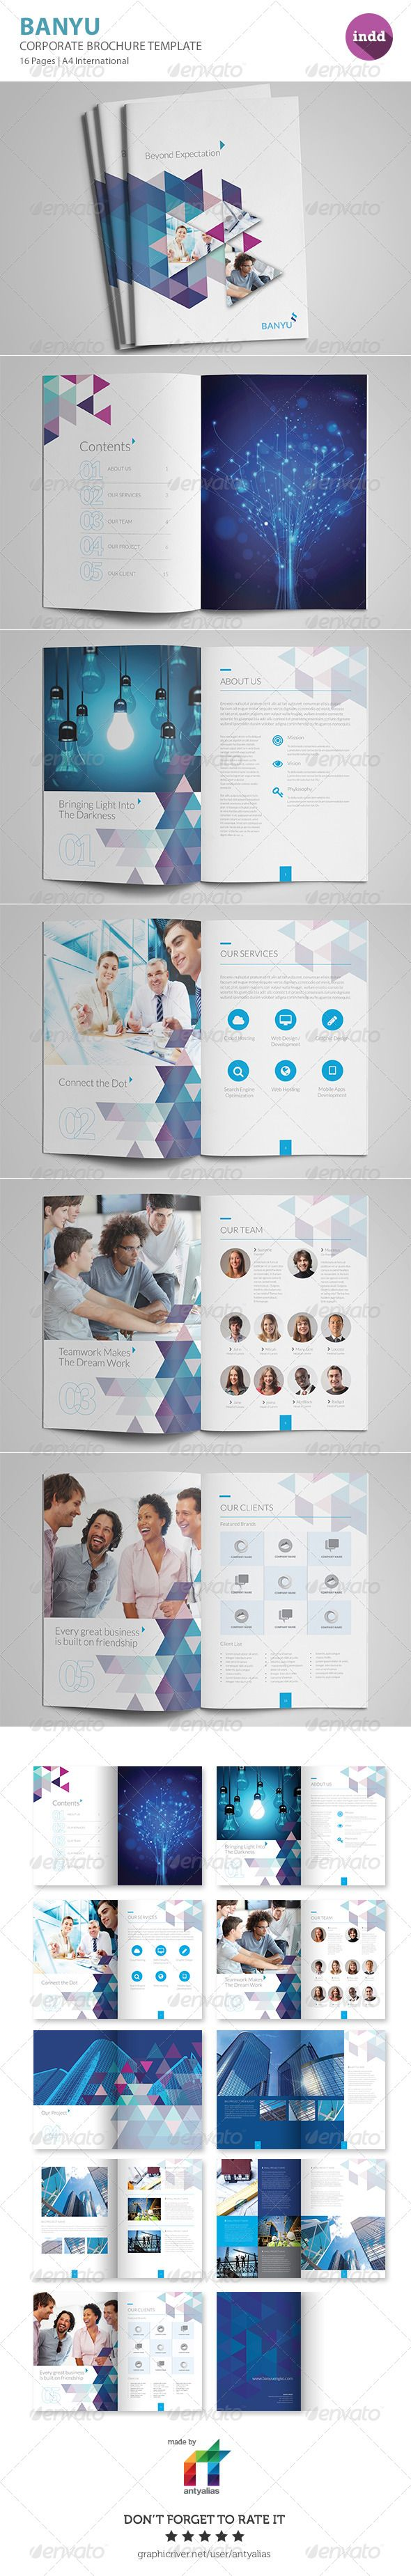 Banyu  Professional Corporate Brochure Templates  Corporate